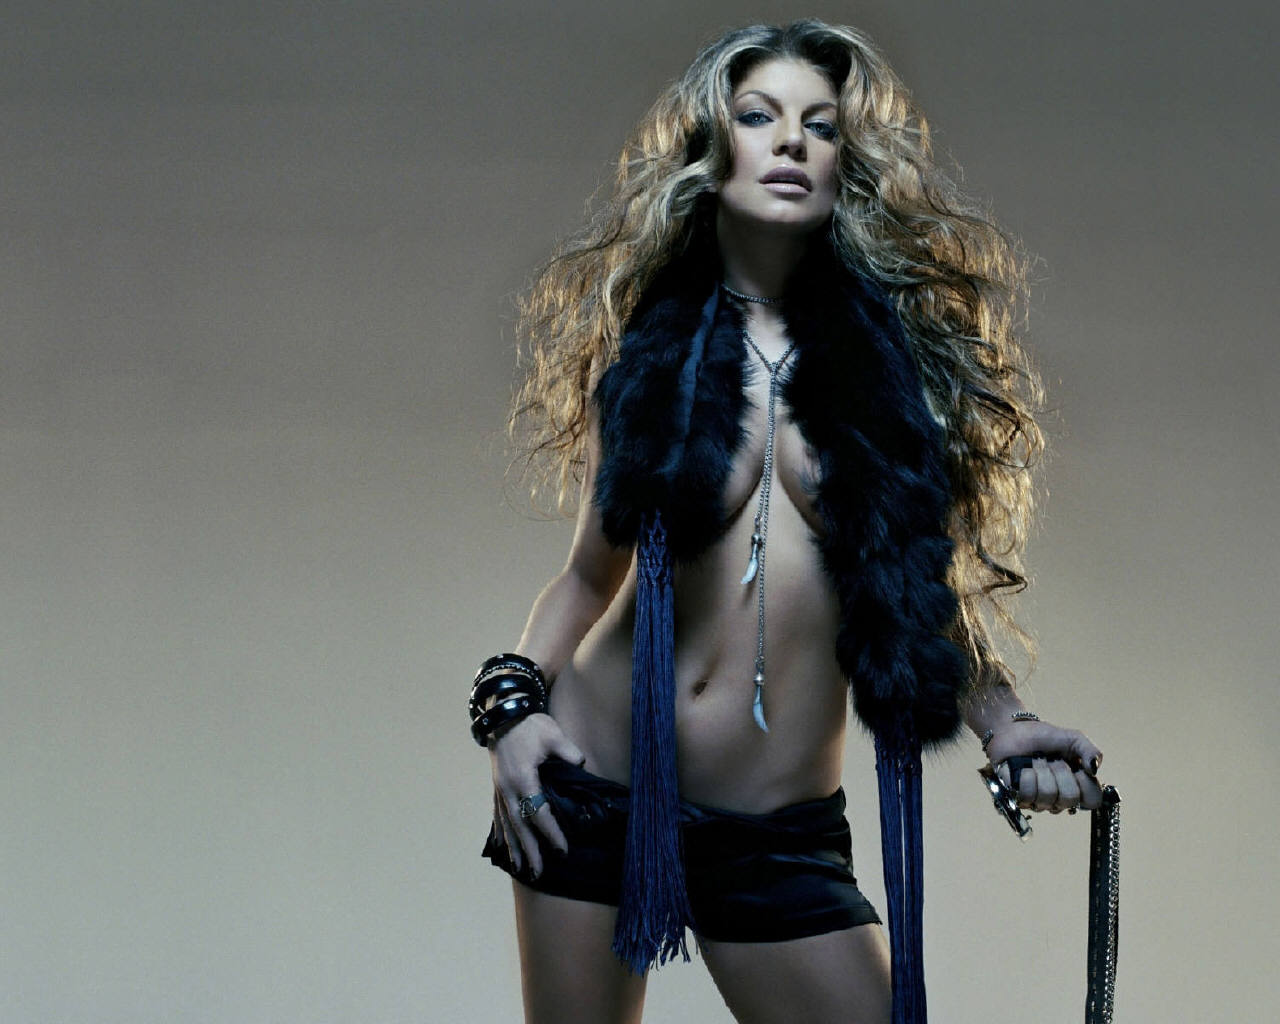 Fergie kicks ass in short shorts and edgy buckled boots shoes post